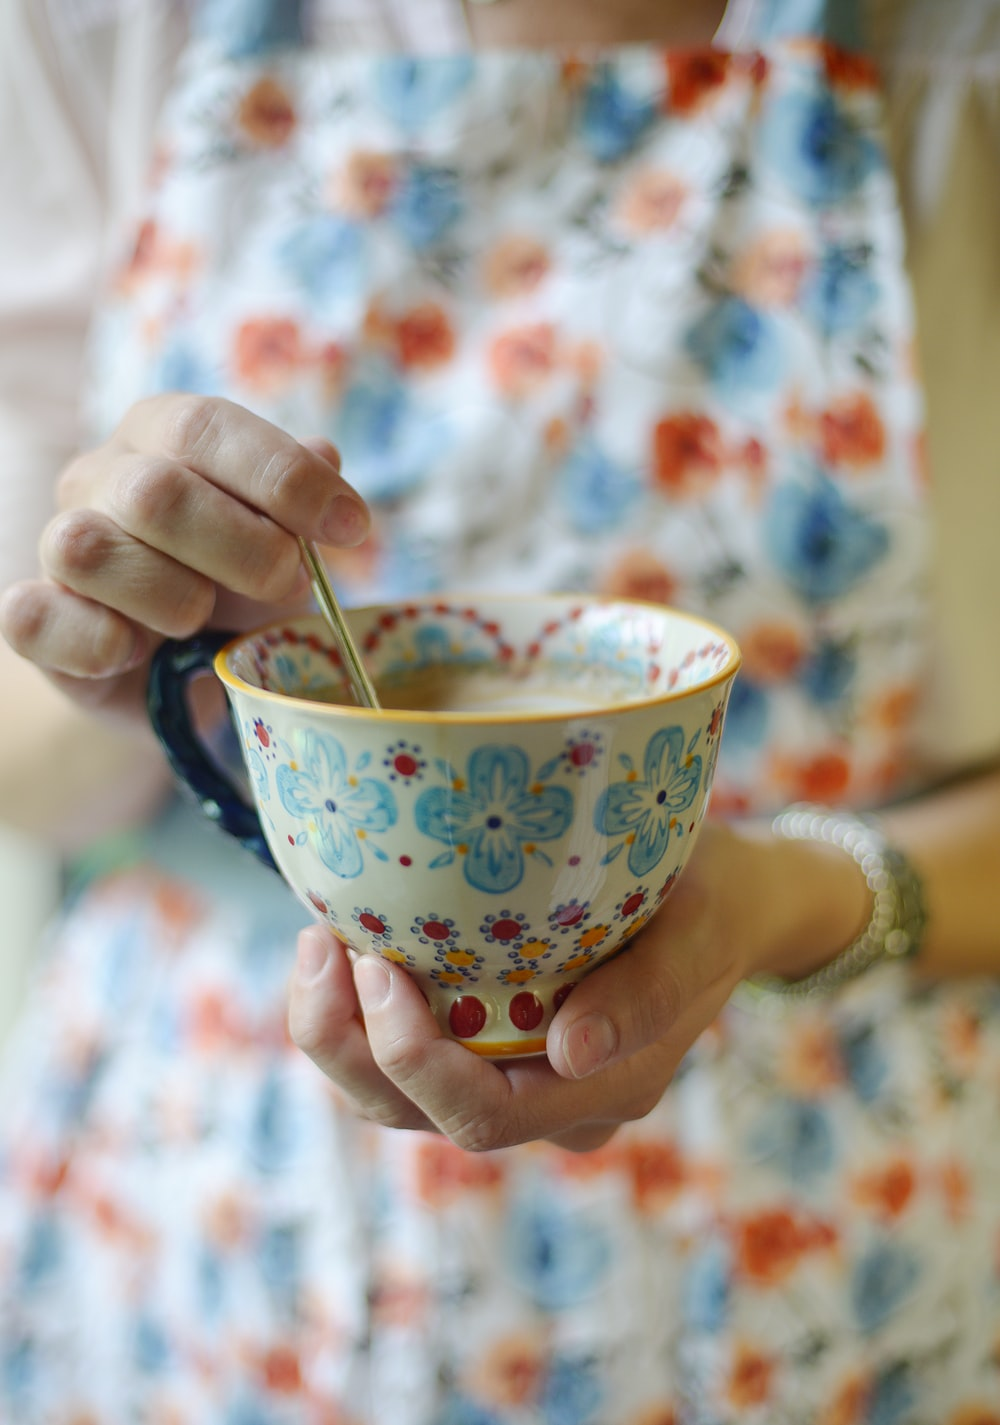 person holding multicolored ceramic teacup